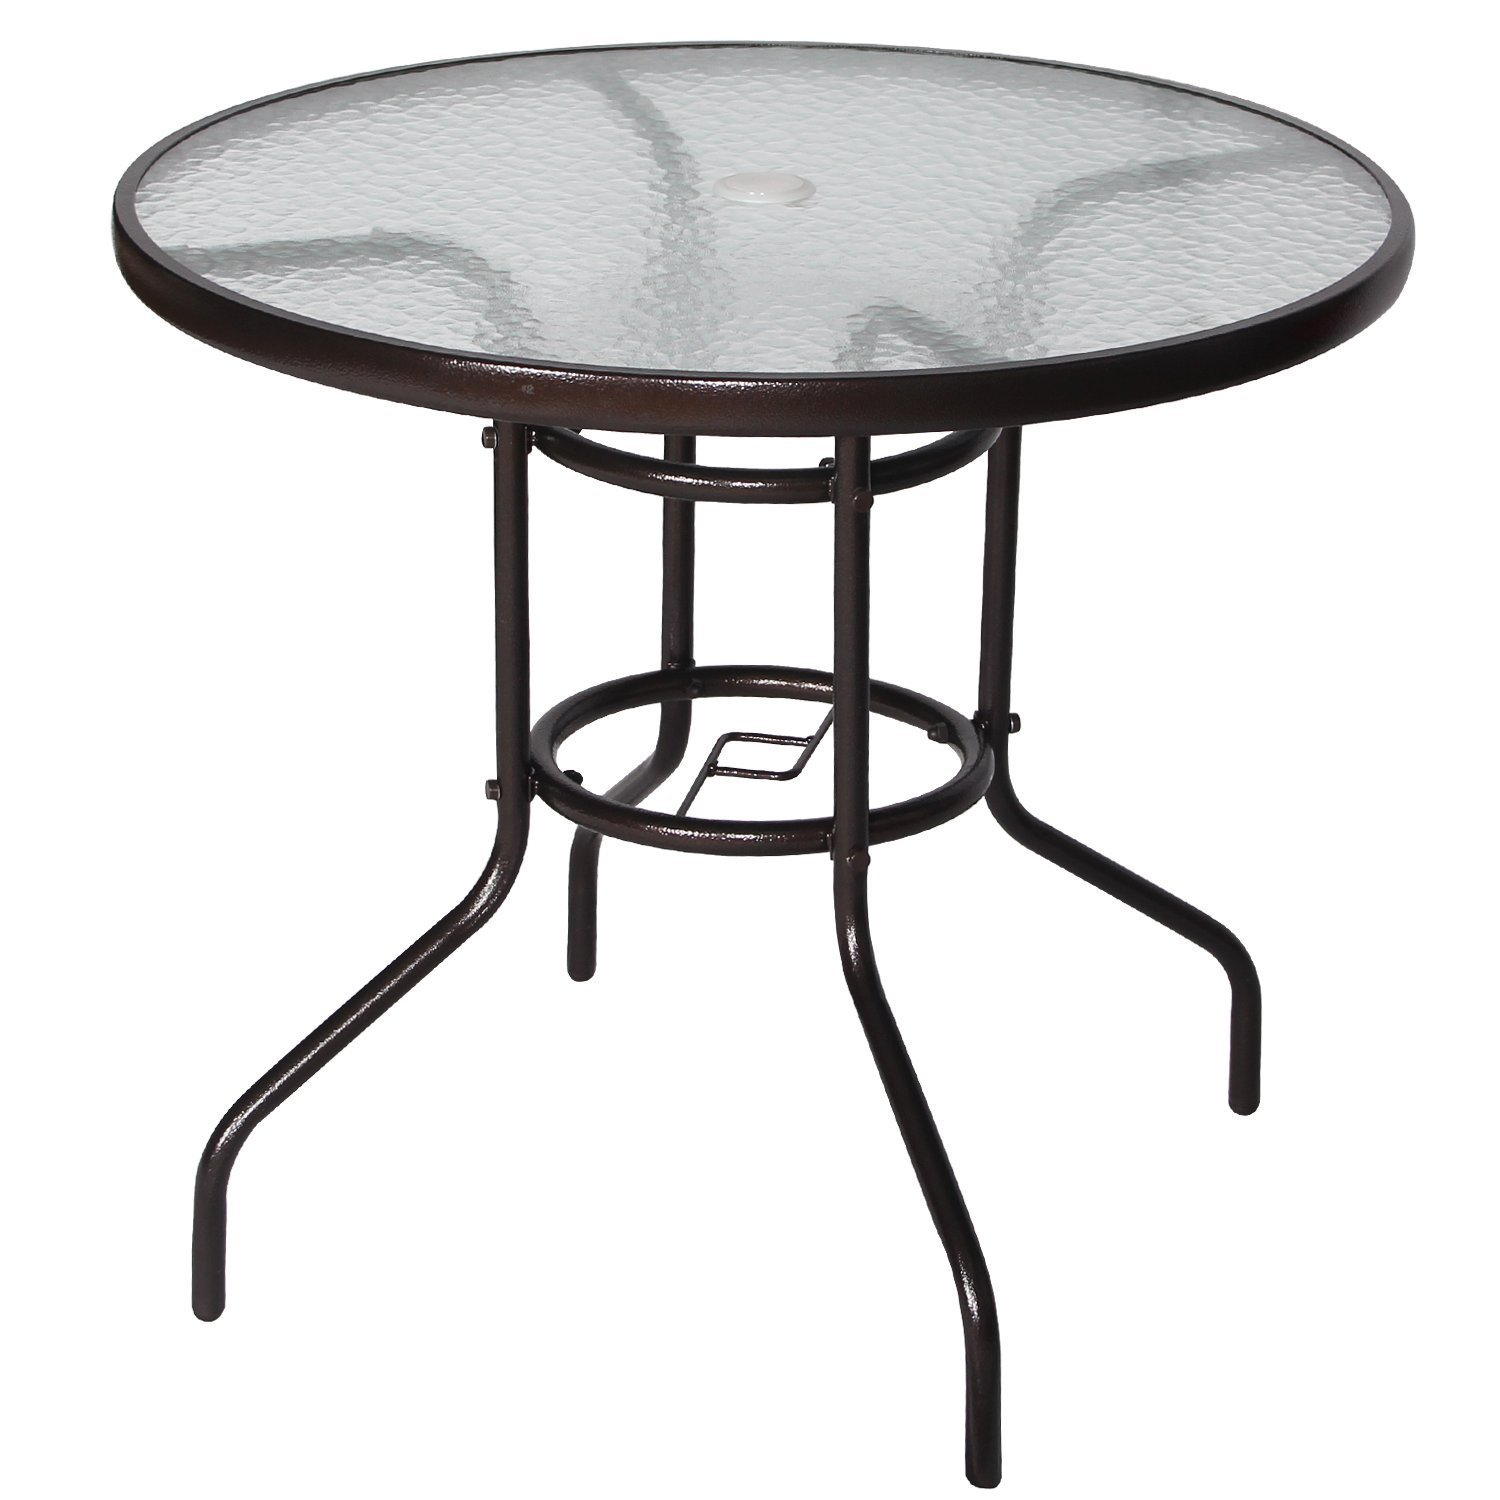 Cloud Mountain 32 Outdoor Dining Table Patio Tempered Glass Bistro Top Umbrella Stand Round Deck Garden Home Furniture